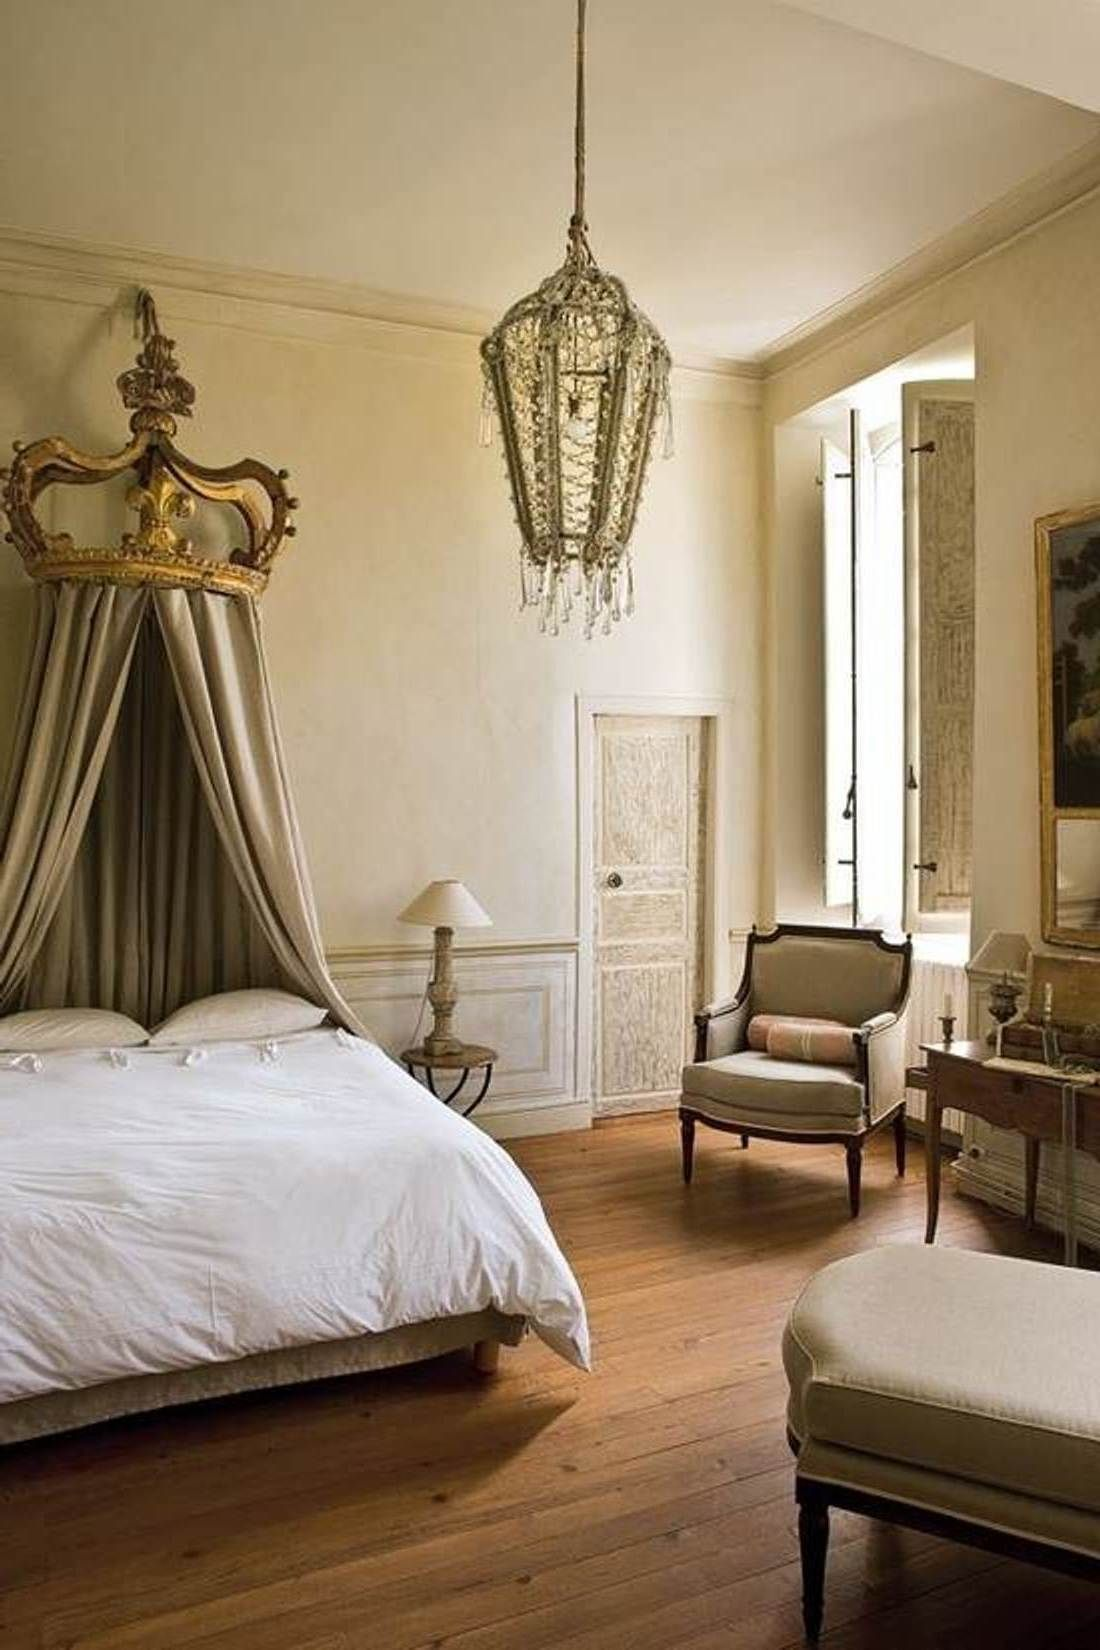 Romantic Room Setting: Romantic French Decorating Style For Bedrooms (With Images